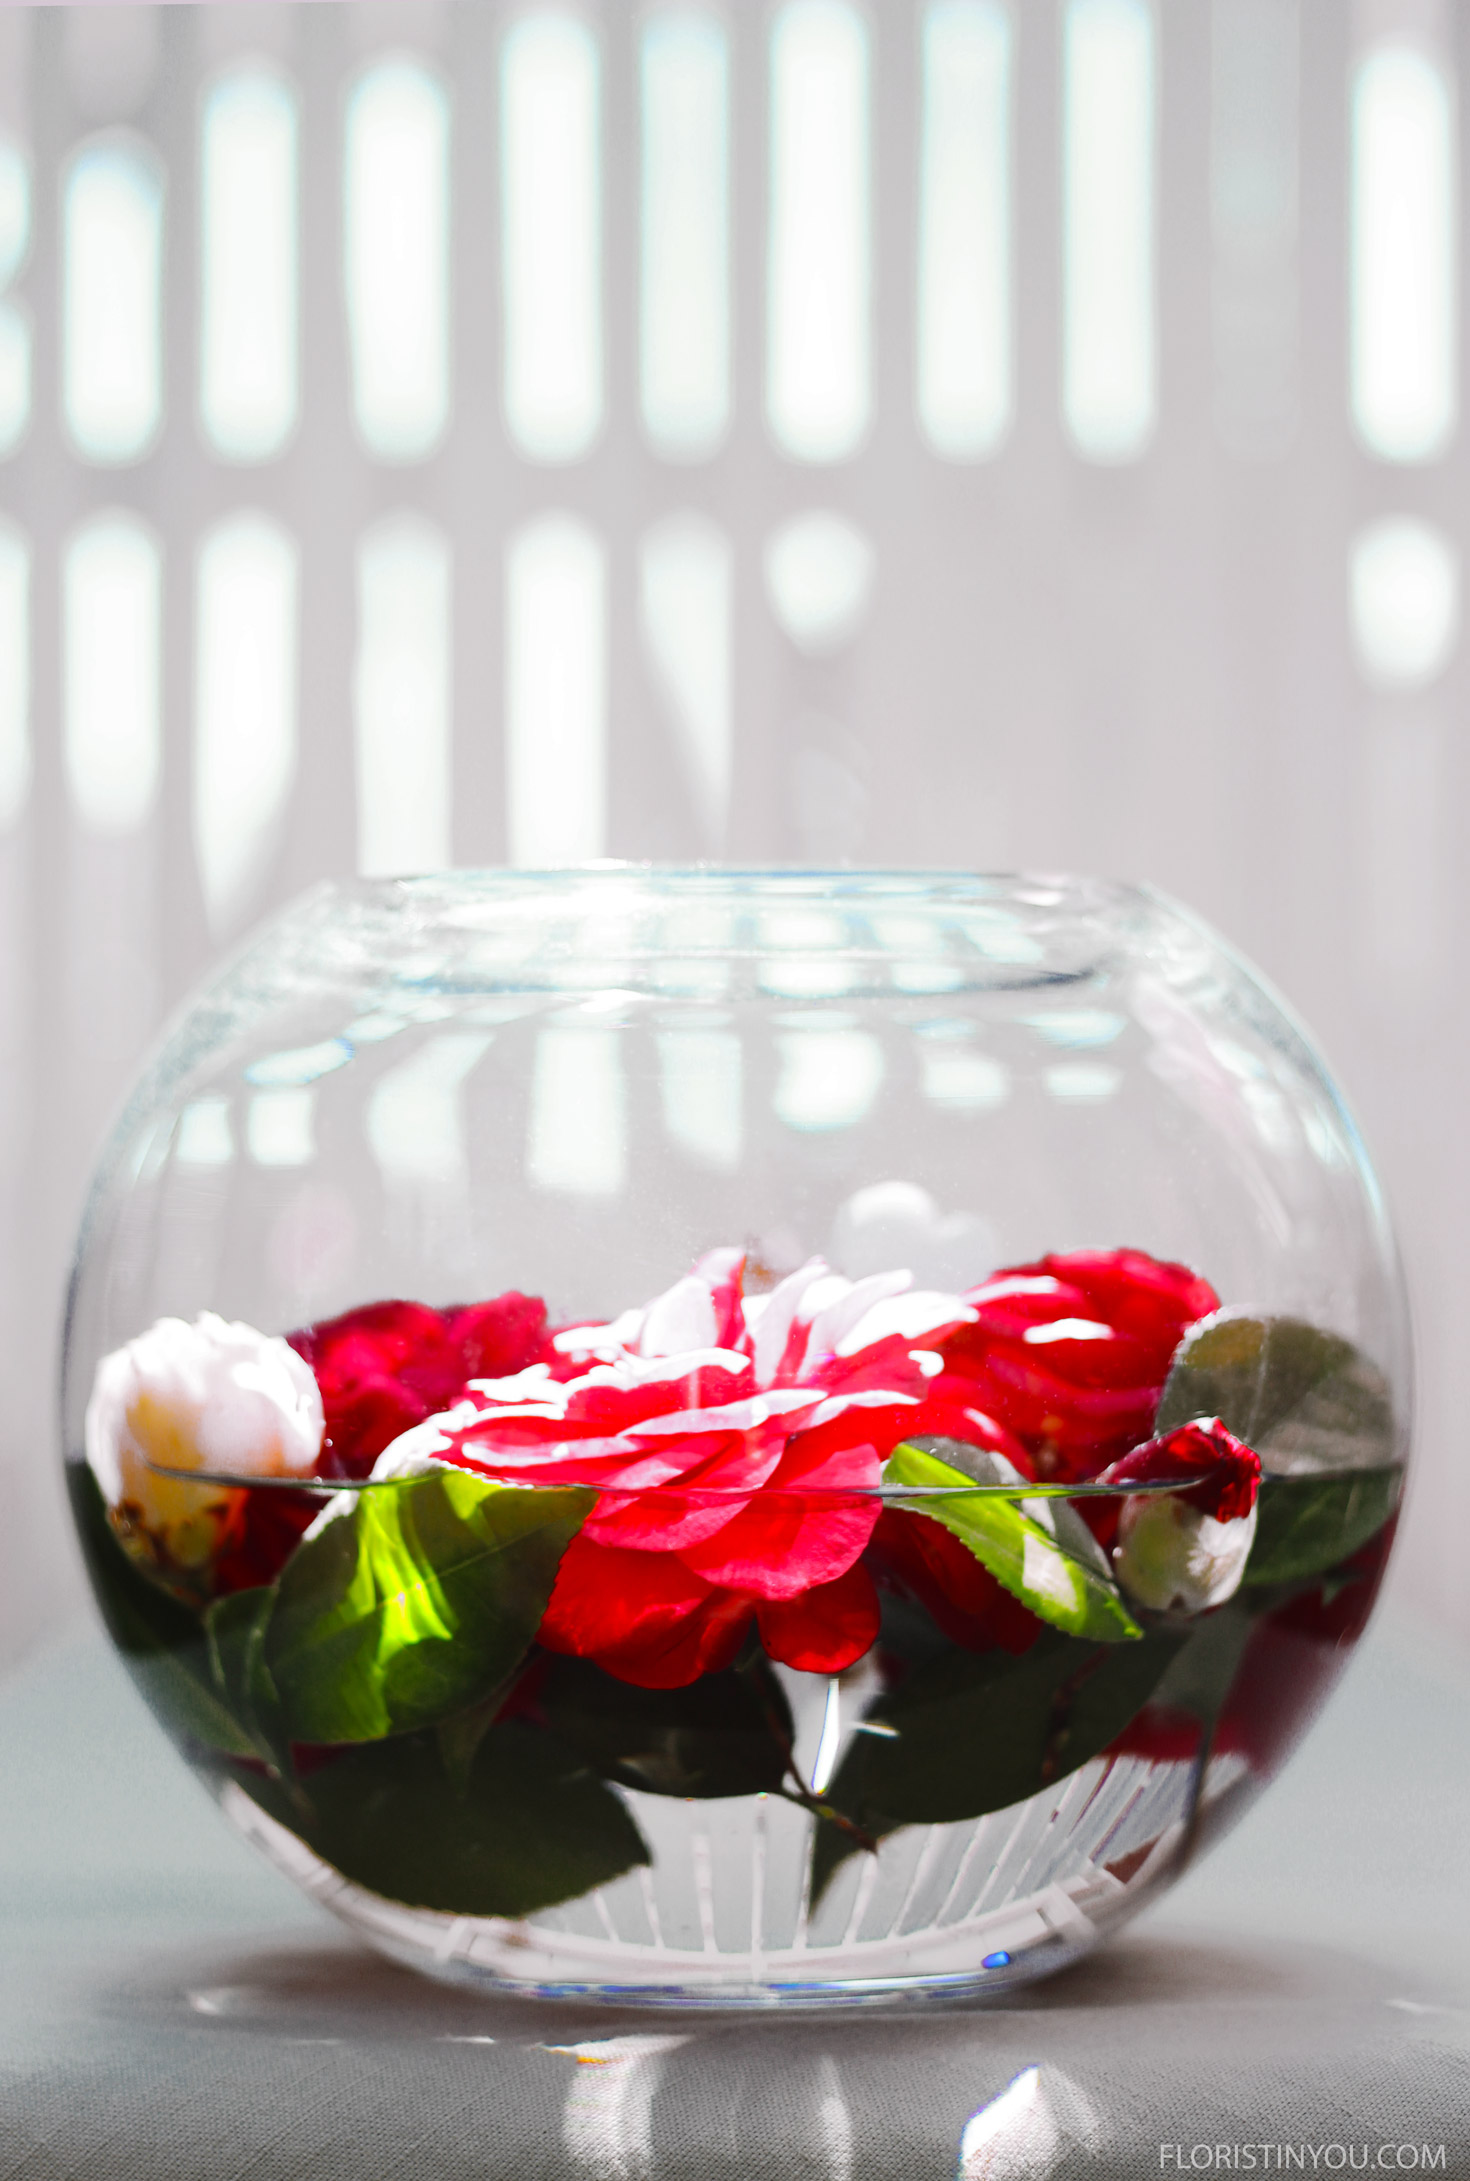 "Floating Camellias                     Normal   0           false   false   false     EN-US   JA   X-NONE                                                                                                                                                                                                                                                                                                                                                                              /* Style Definitions */ table.MsoNormalTable 	{mso-style-name:""Table Normal""; 	mso-tstyle-rowband-size:0; 	mso-tstyle-colband-size:0; 	mso-style-noshow:yes; 	mso-style-priority:99; 	mso-style-parent:""""; 	mso-padding-alt:0in 5.4pt 0in 5.4pt; 	mso-para-margin:0in; 	mso-para-margin-bottom:.0001pt; 	mso-pagination:widow-orphan; 	font-size:12.0pt; 	font-family:Cambria; 	mso-ascii-font-family:Cambria; 	mso-ascii-theme-font:minor-latin; 	mso-hansi-font-family:Cambria; 	mso-hansi-theme-font:minor-latin;}"